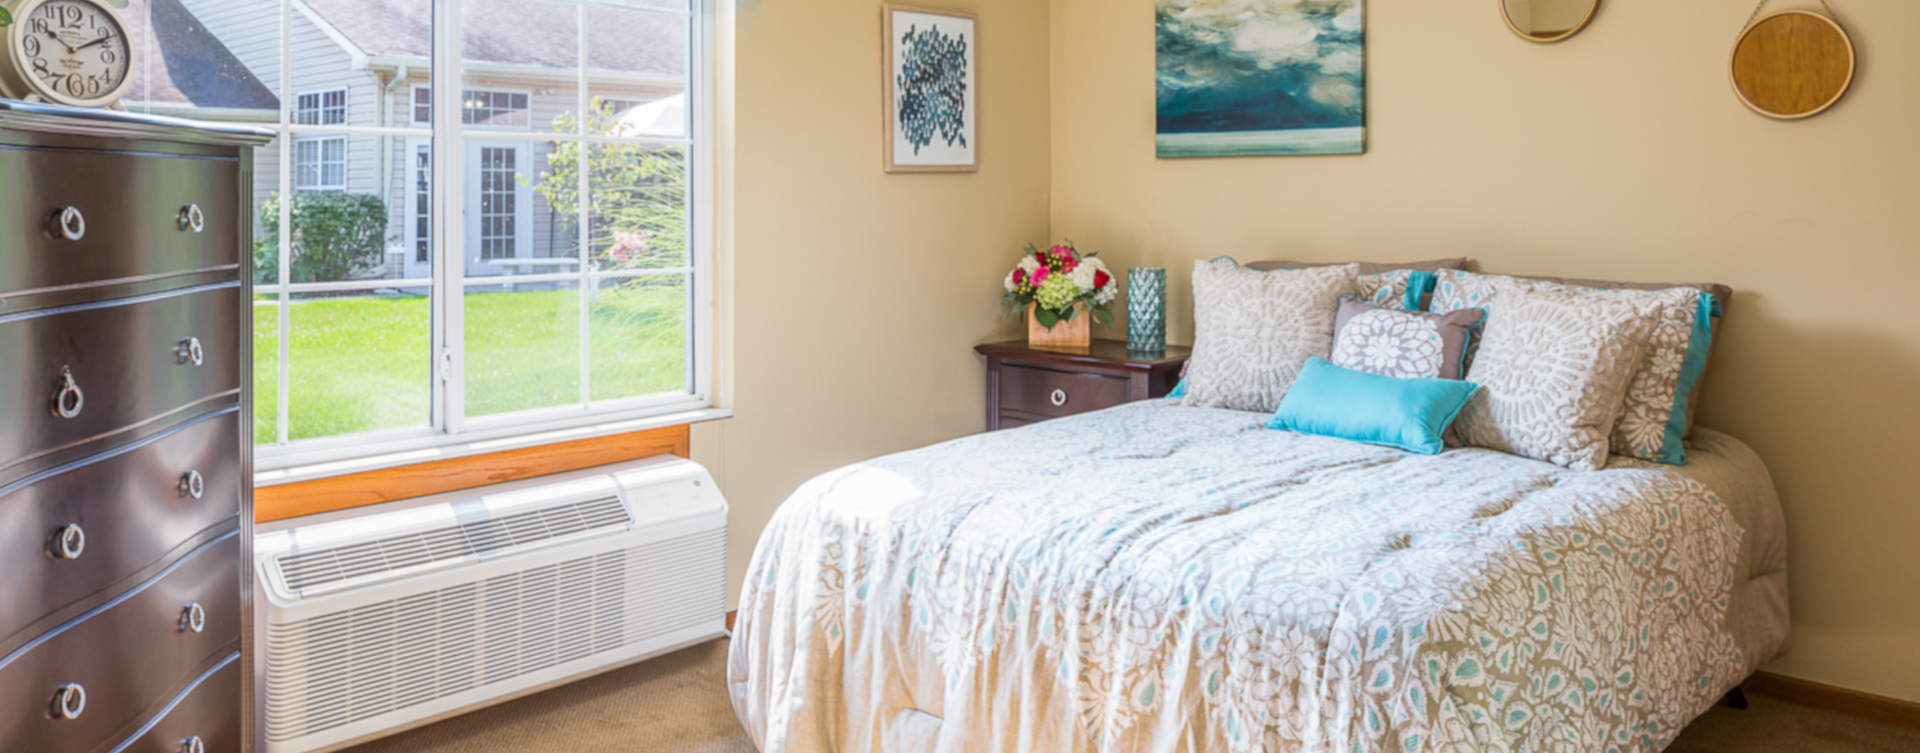 Get a new lease on life with a cozy apartment at Bickford of Omaha - Hickory